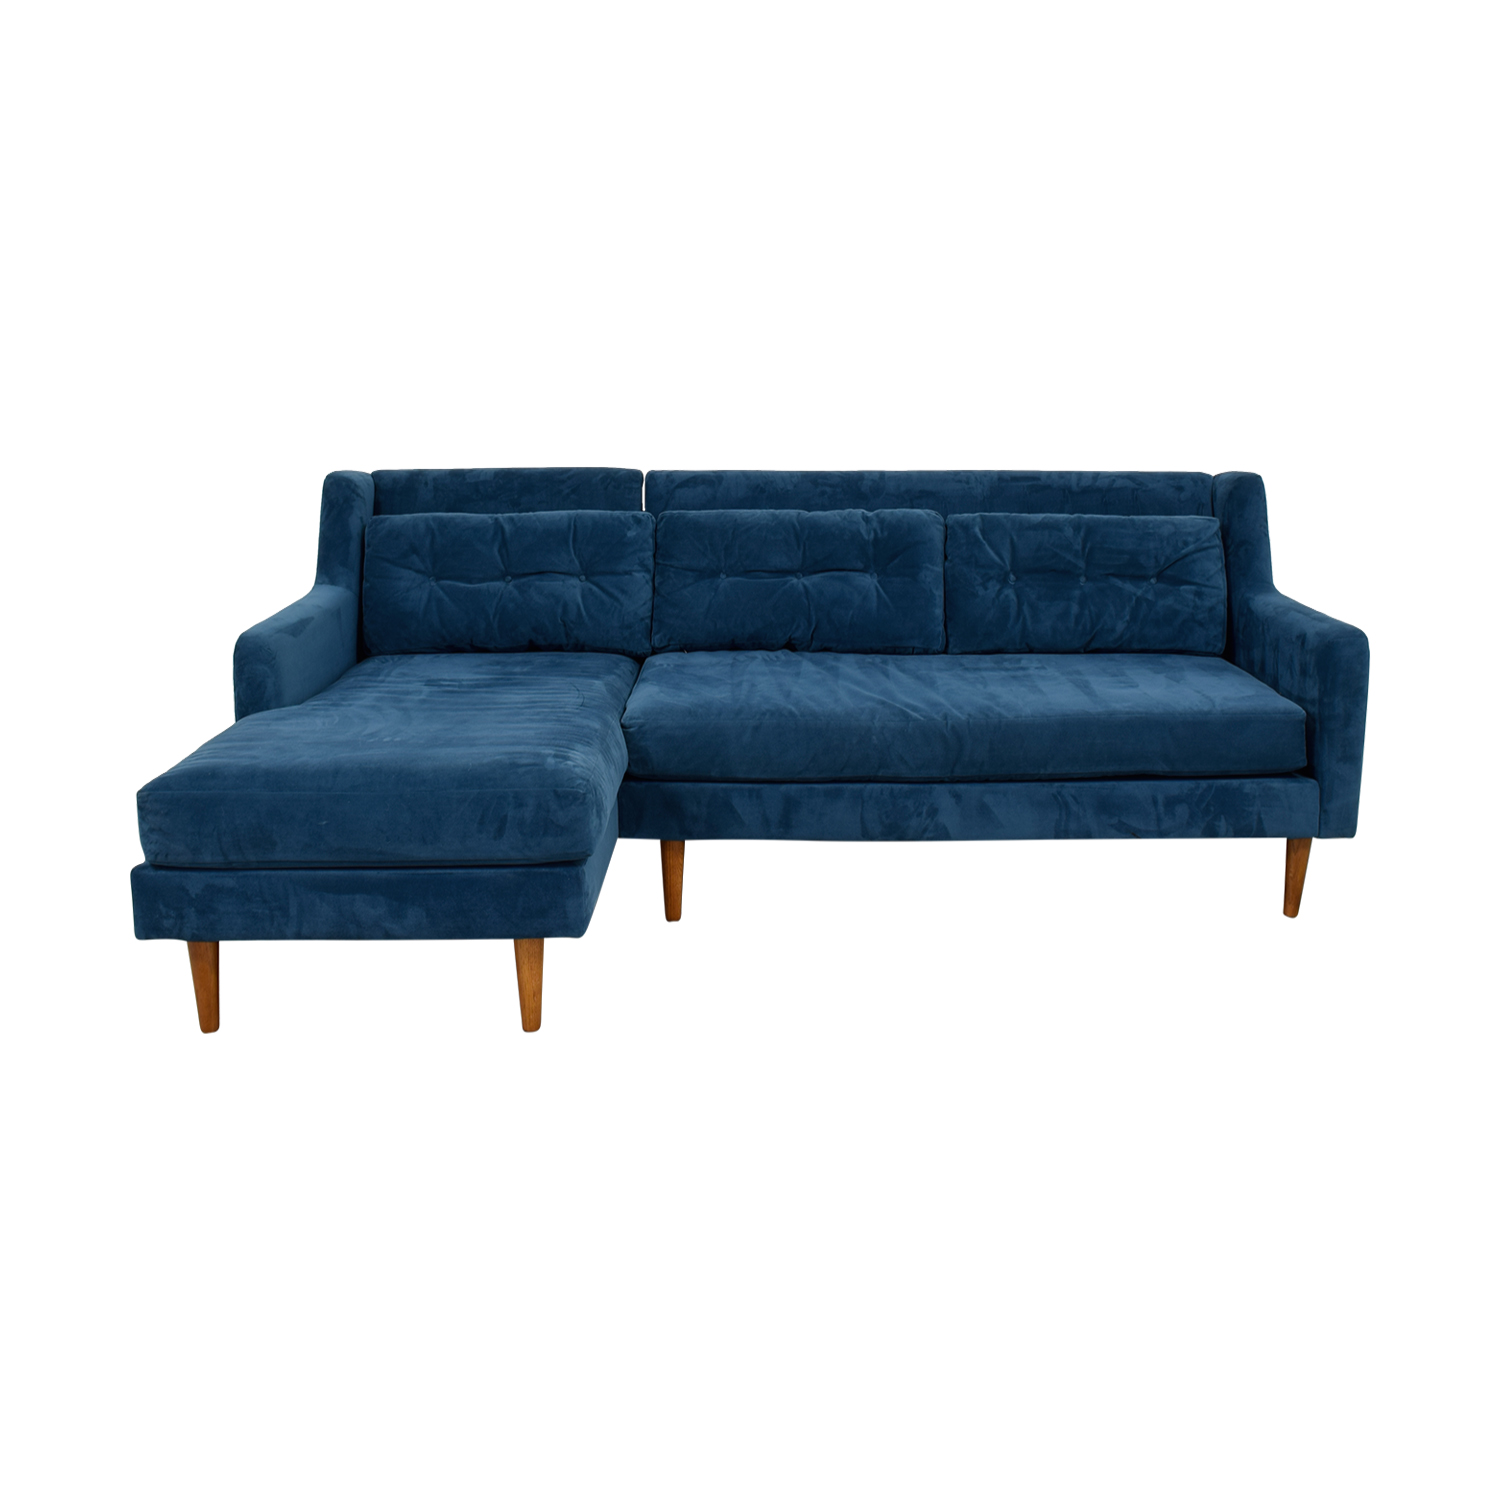 West Elm Crosby Lagoon Blue Tufted Chaise Sectional sale